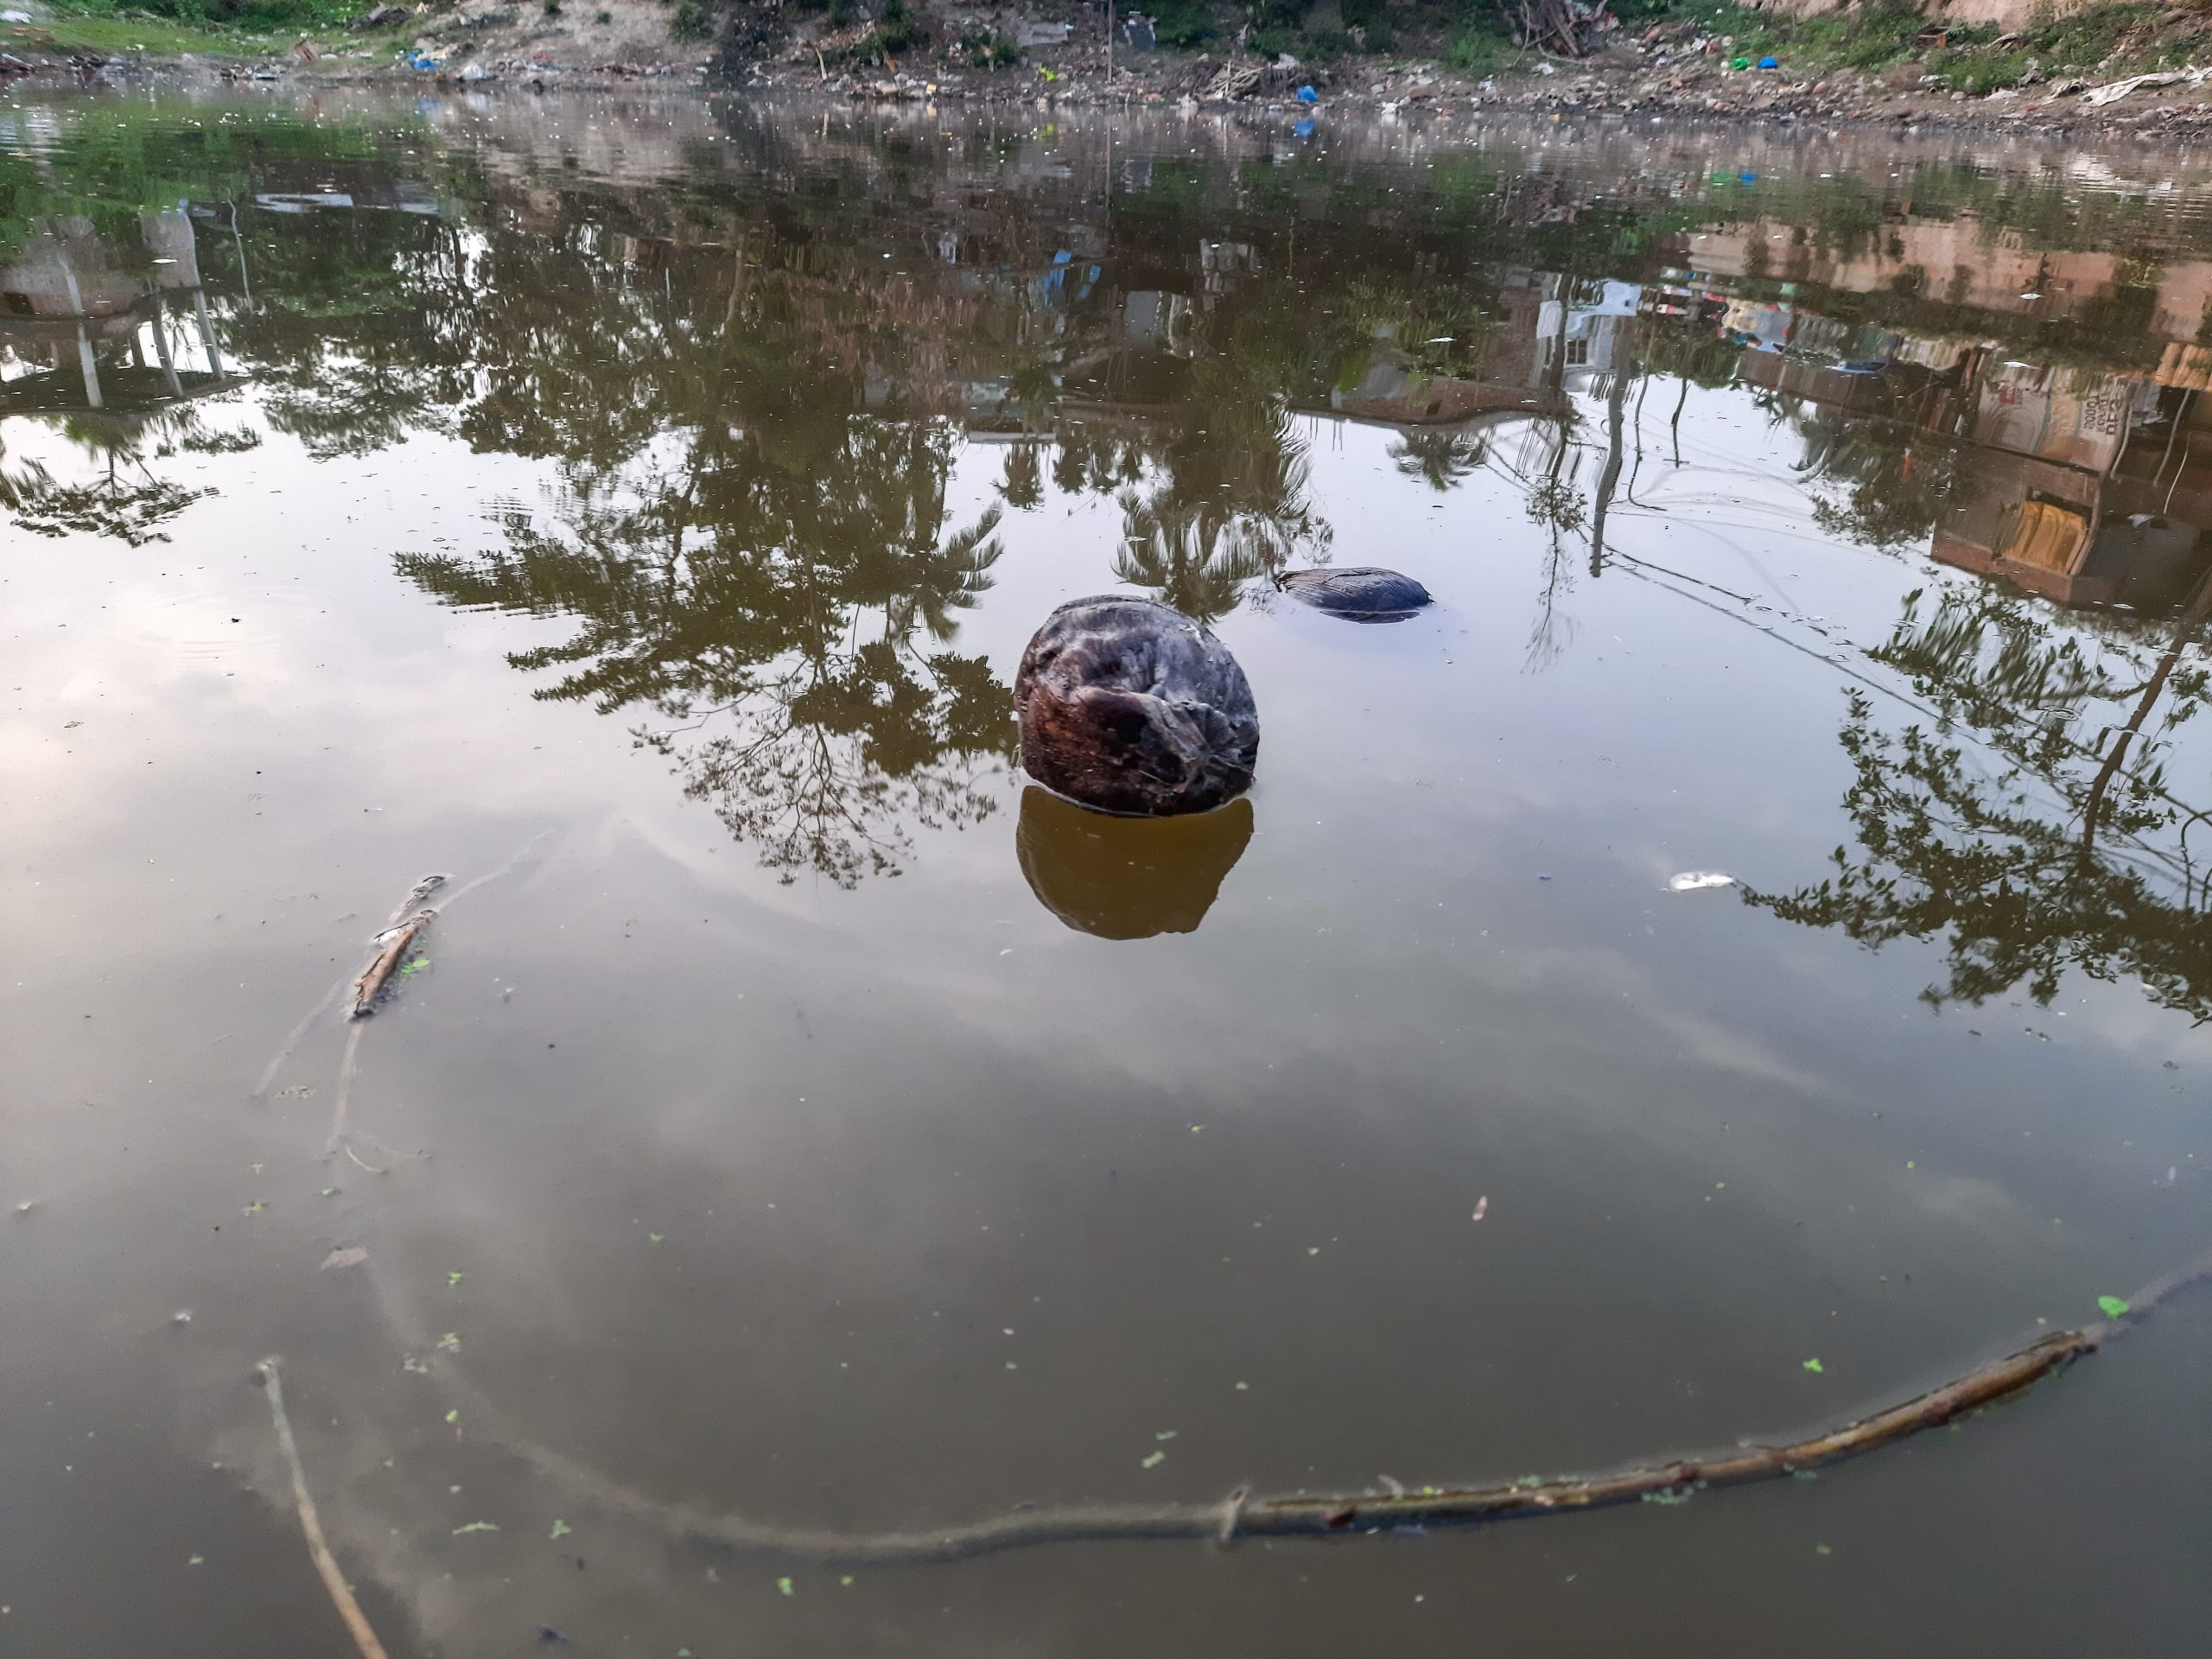 A polluted pond